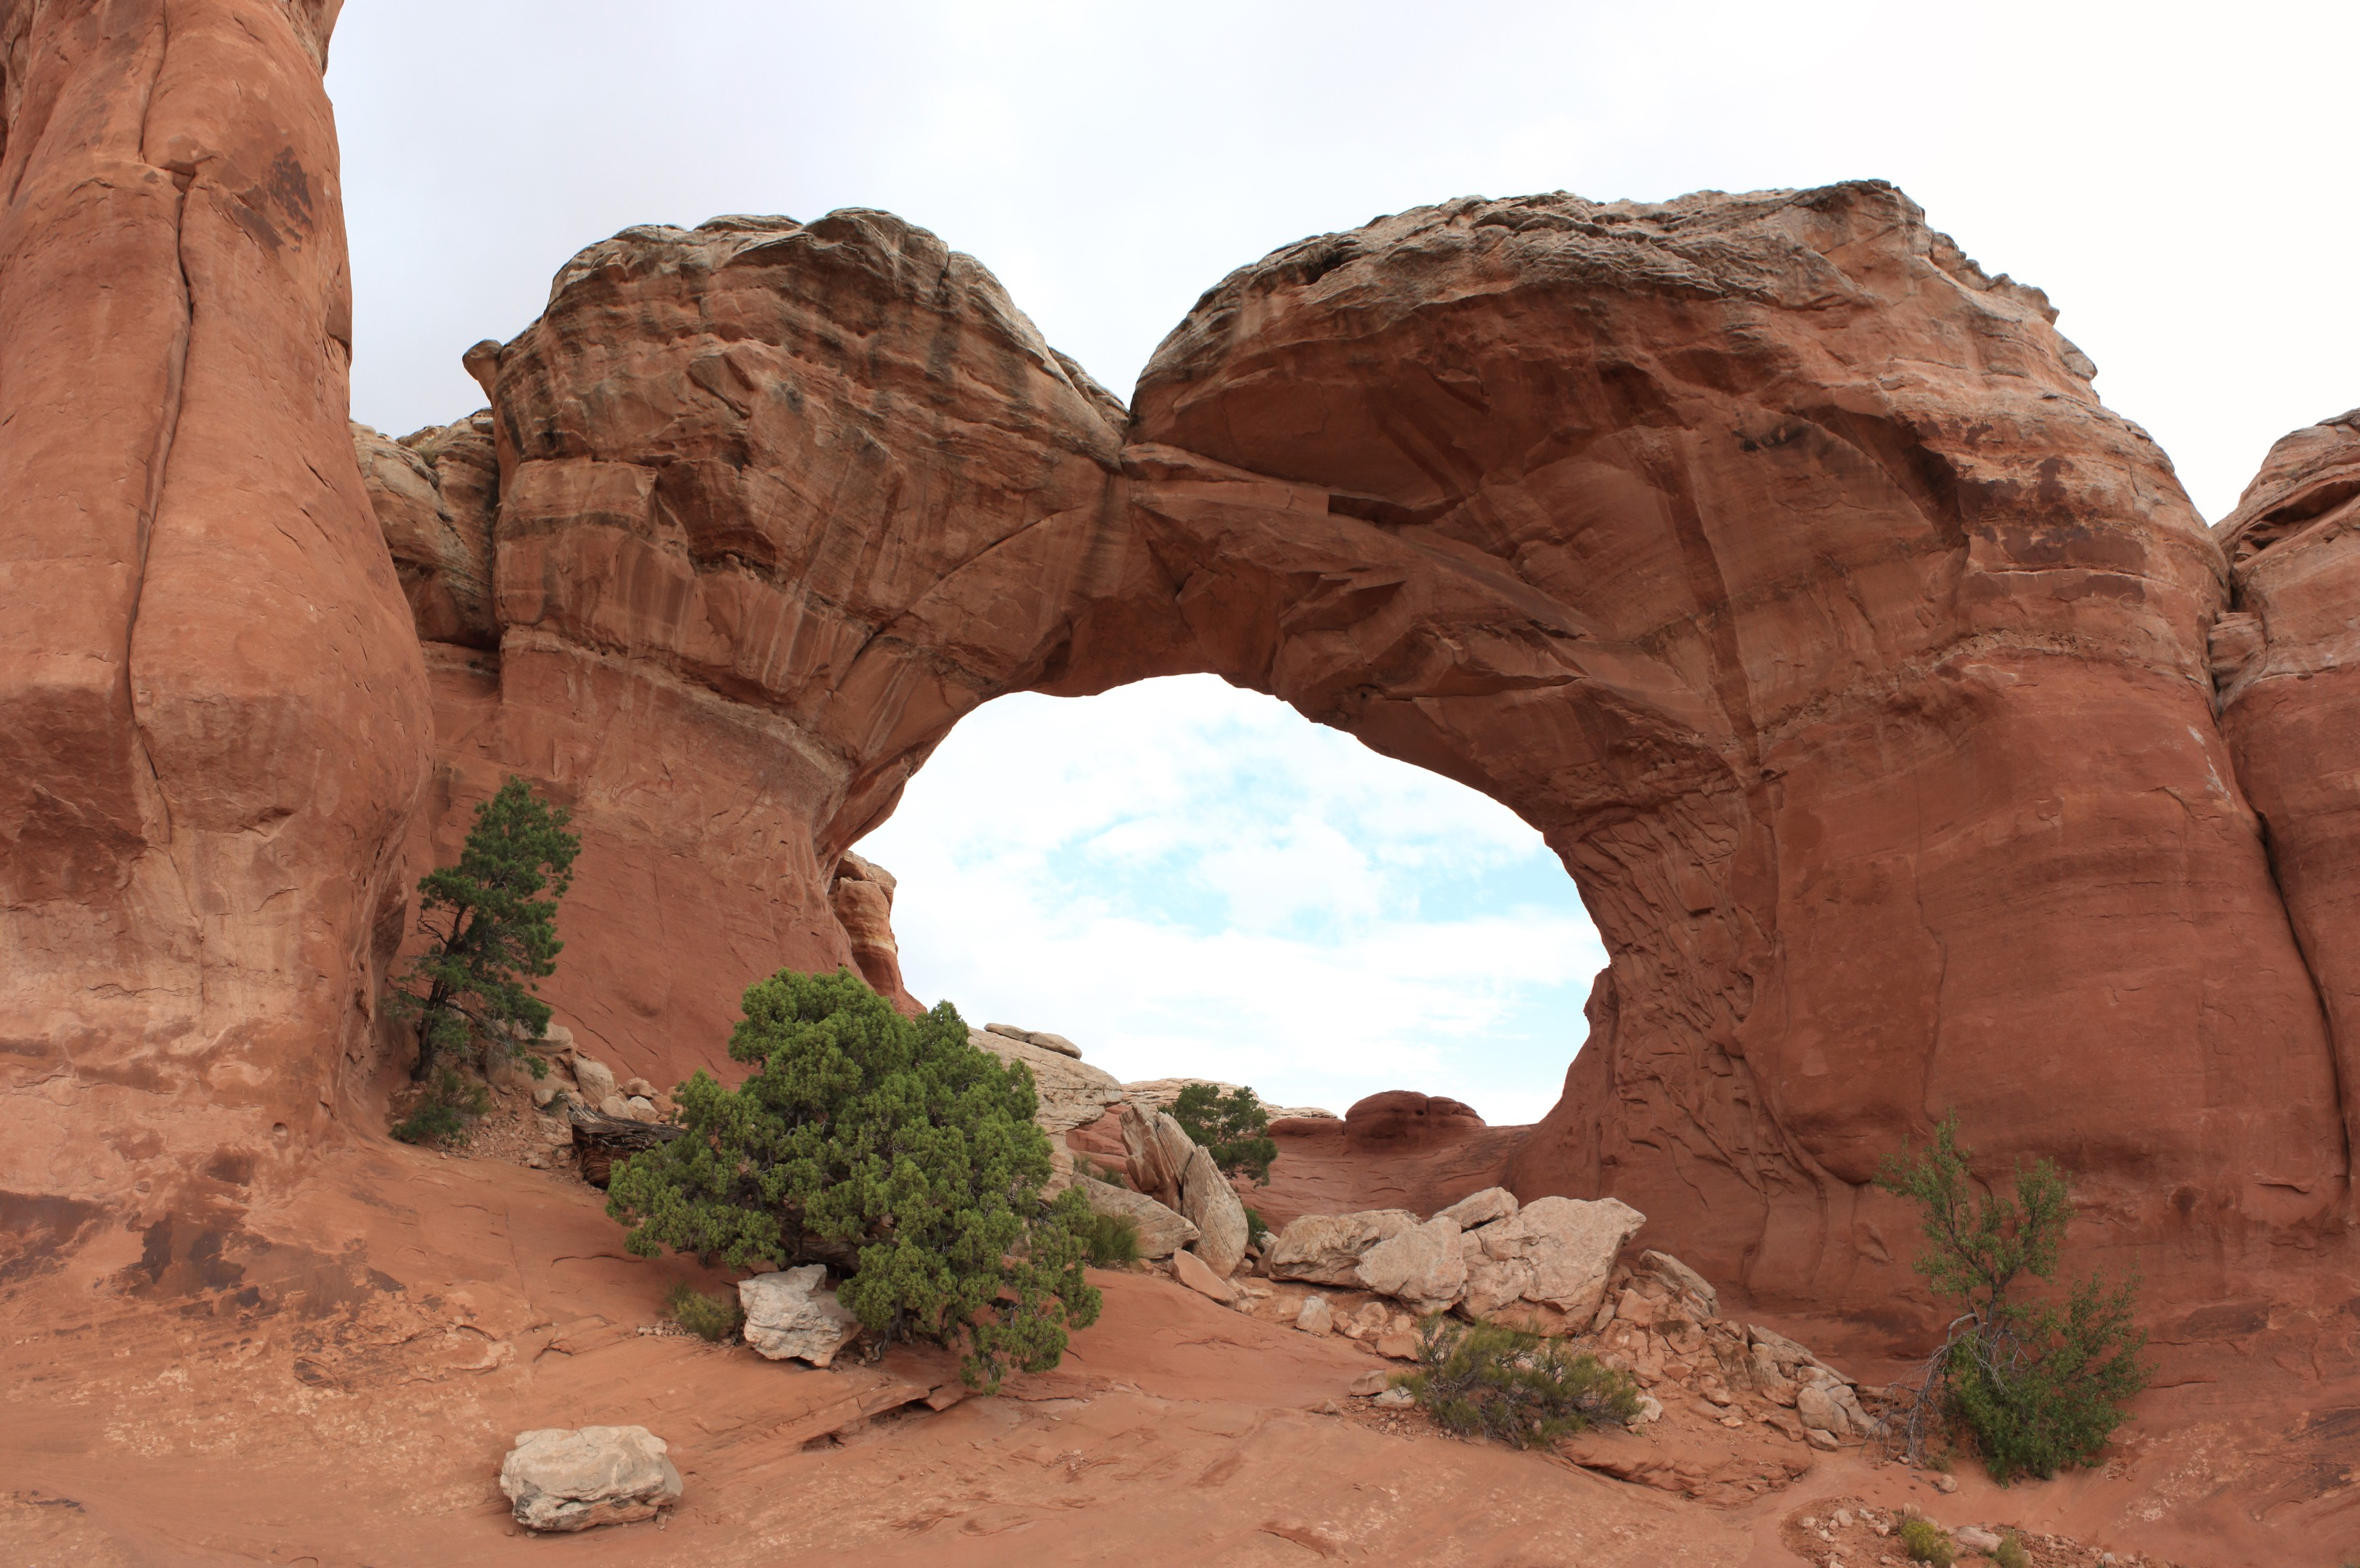 Note the broken parts on the ground and the obvious cleft centre left of the arch. The trail to the arch actually passes through the arch itself on the way to the campground (closed in 2017)